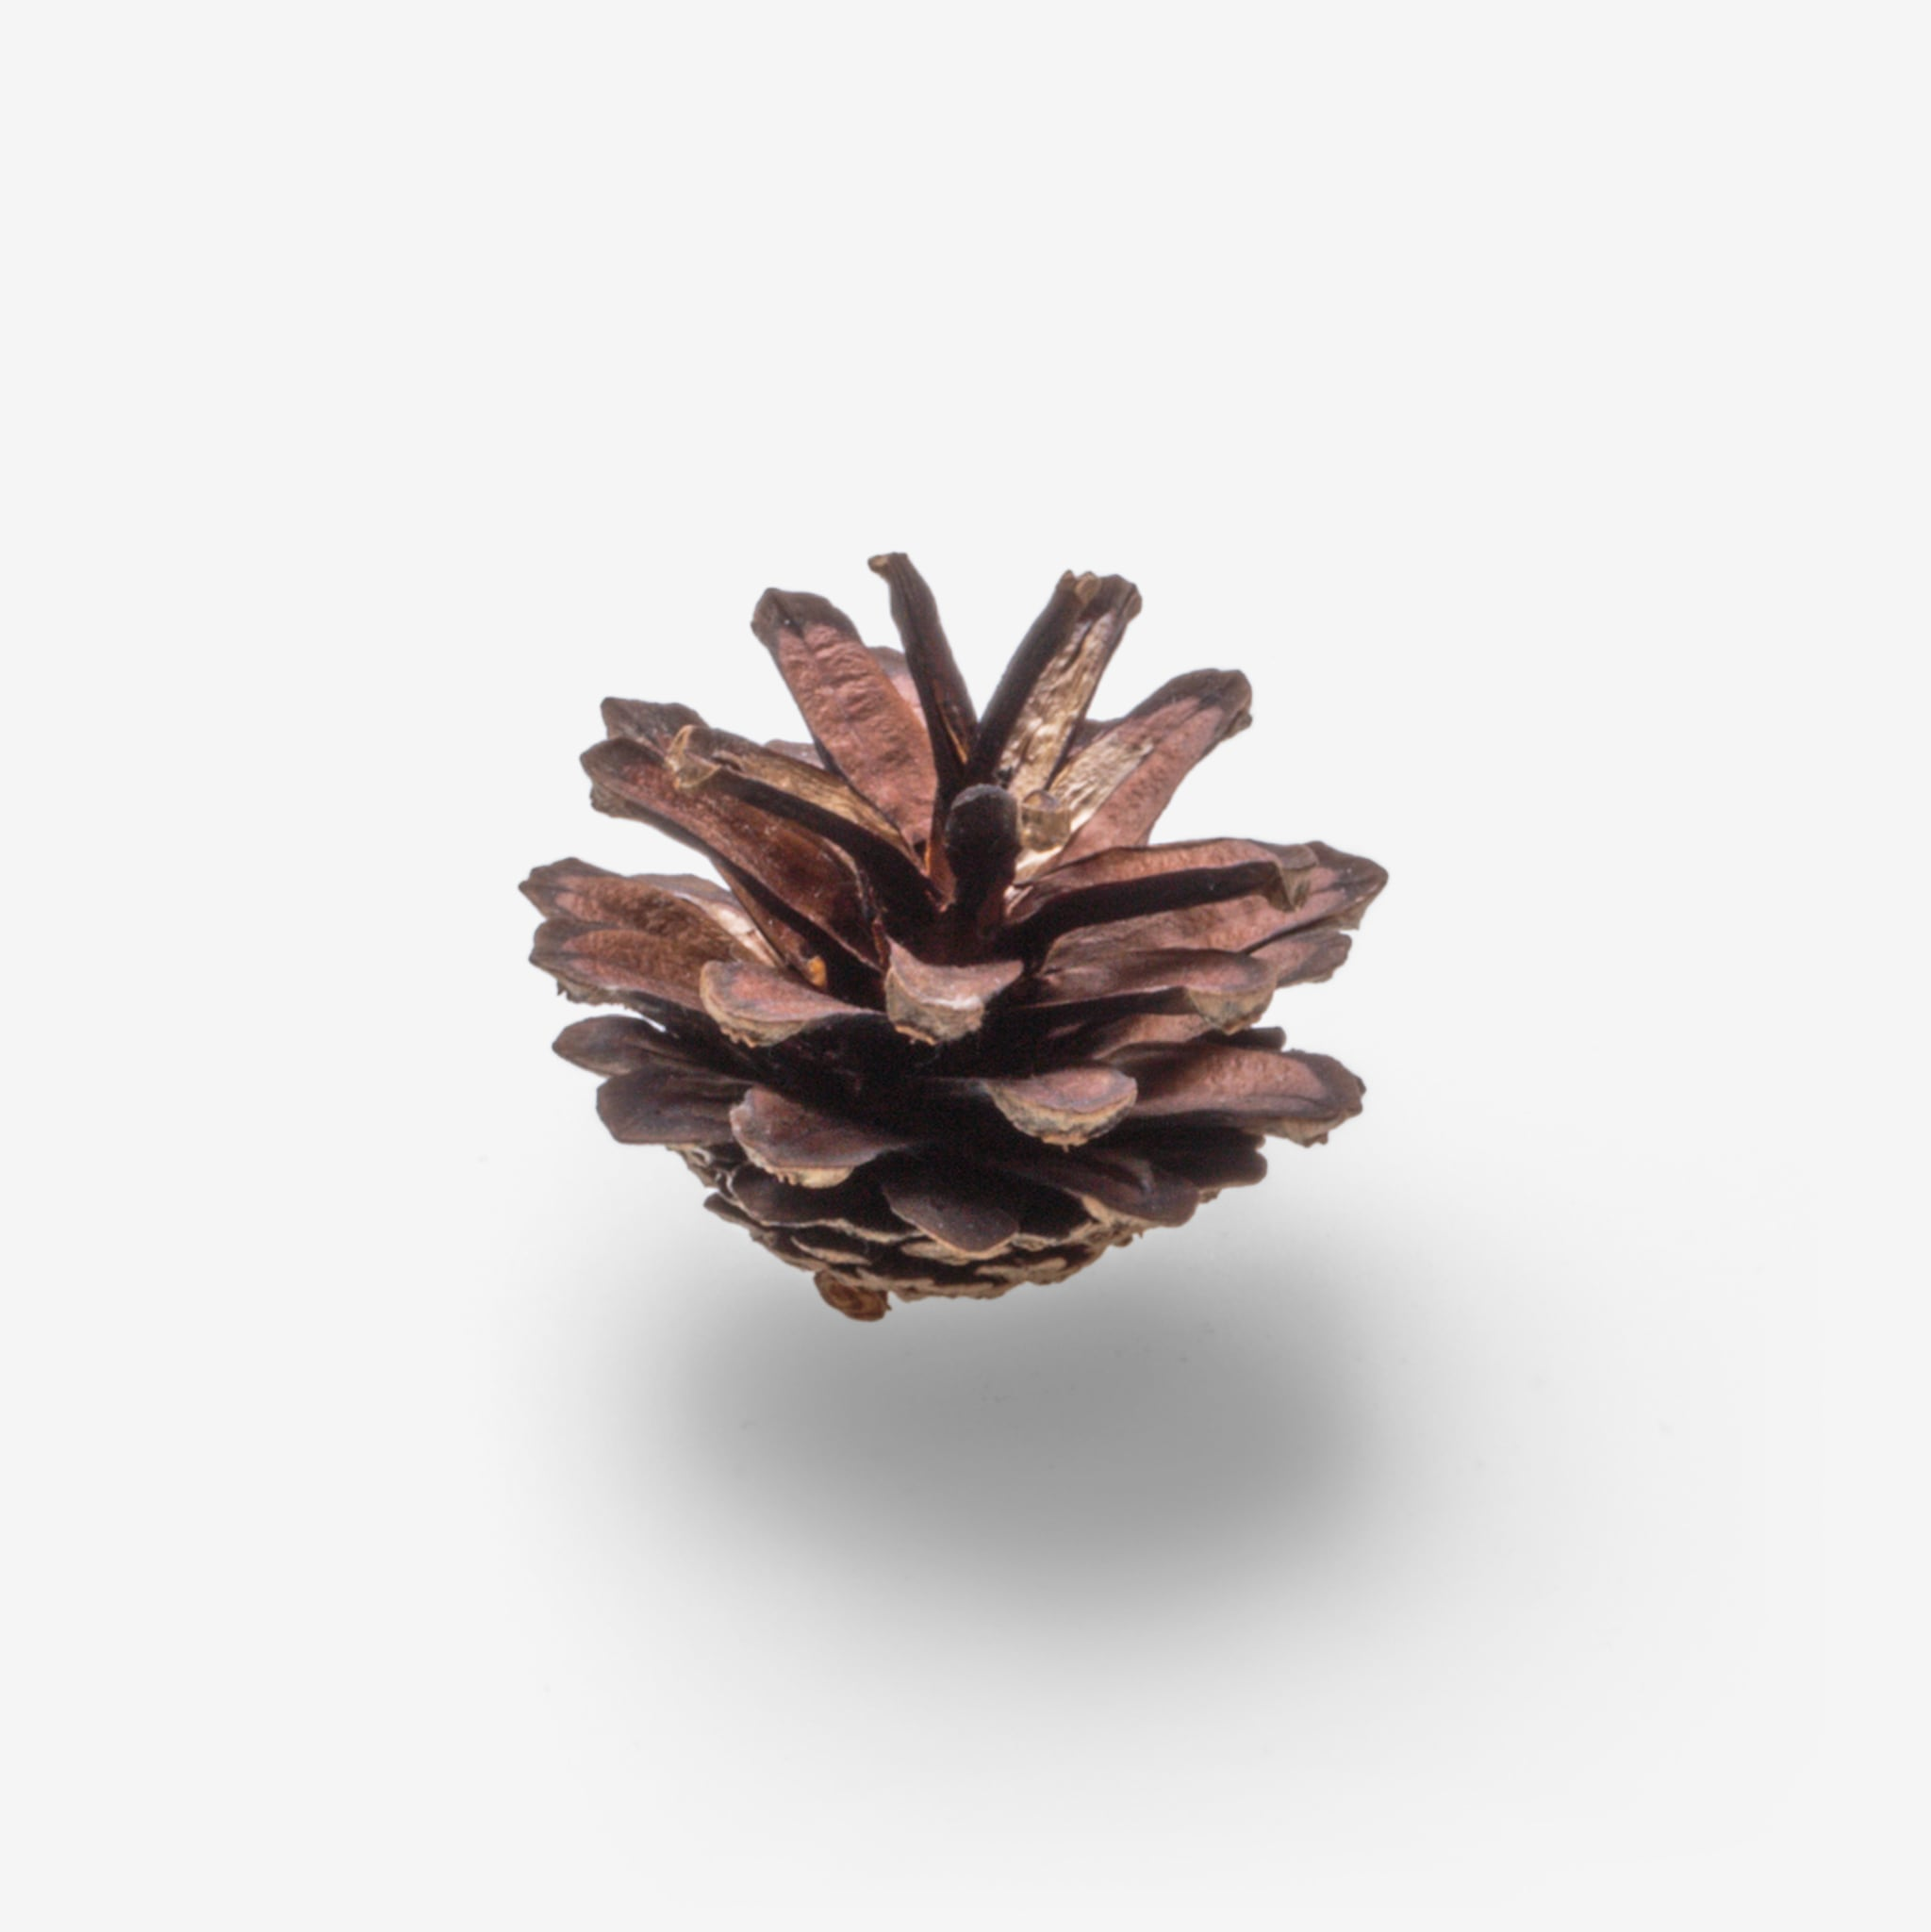 Dried flower image asset with transparent background